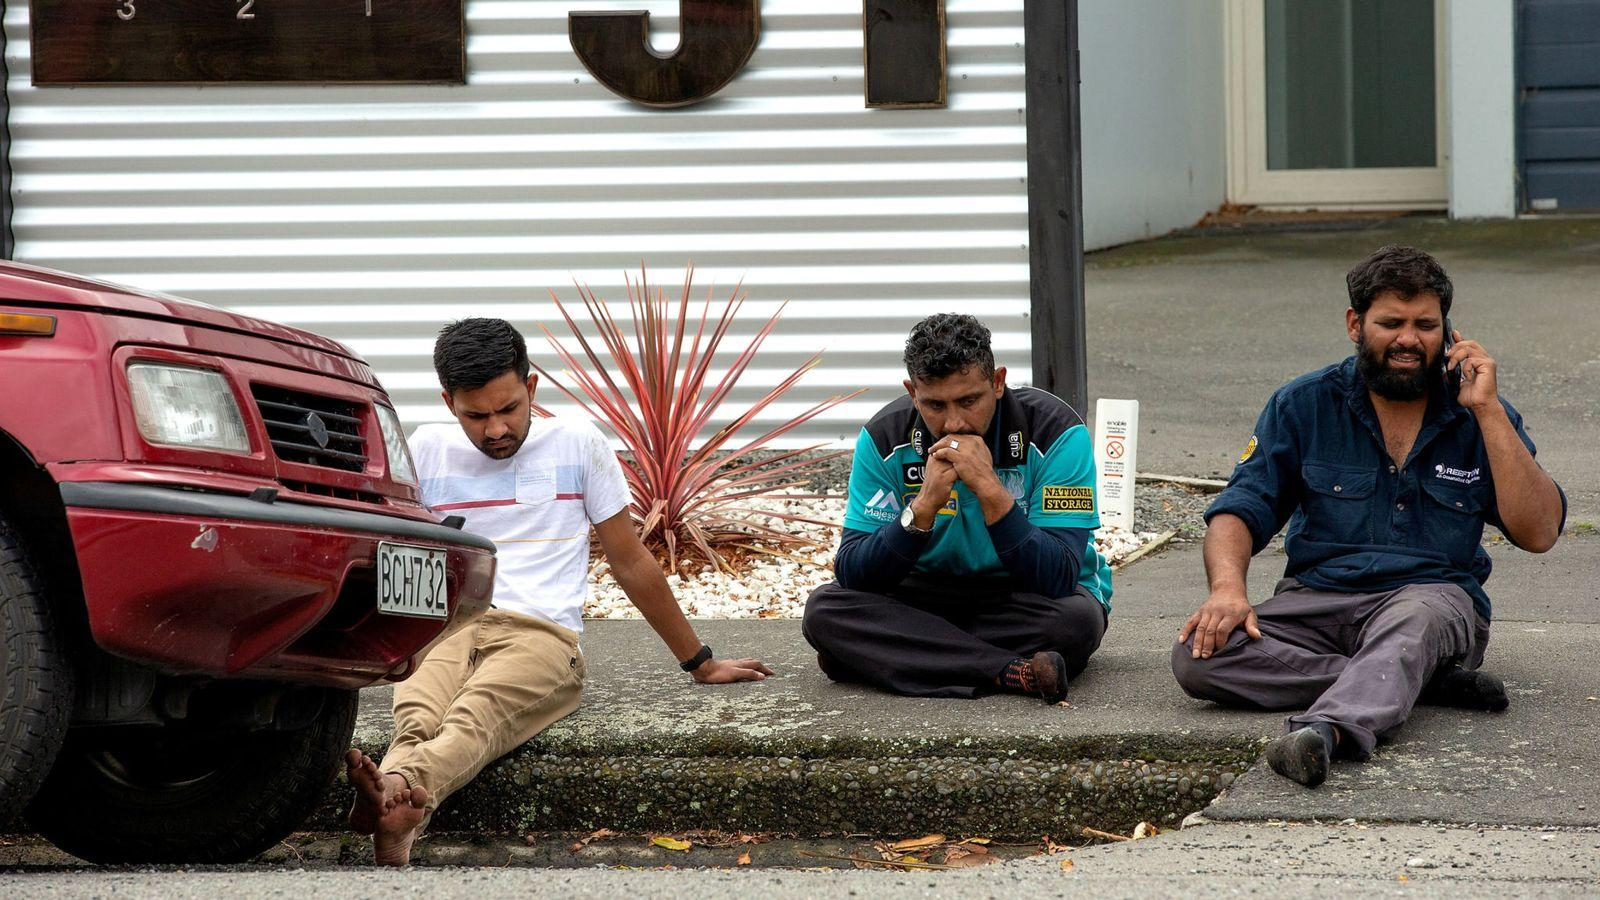 Grieving members of the public following a shooting at the Al Noor mosque